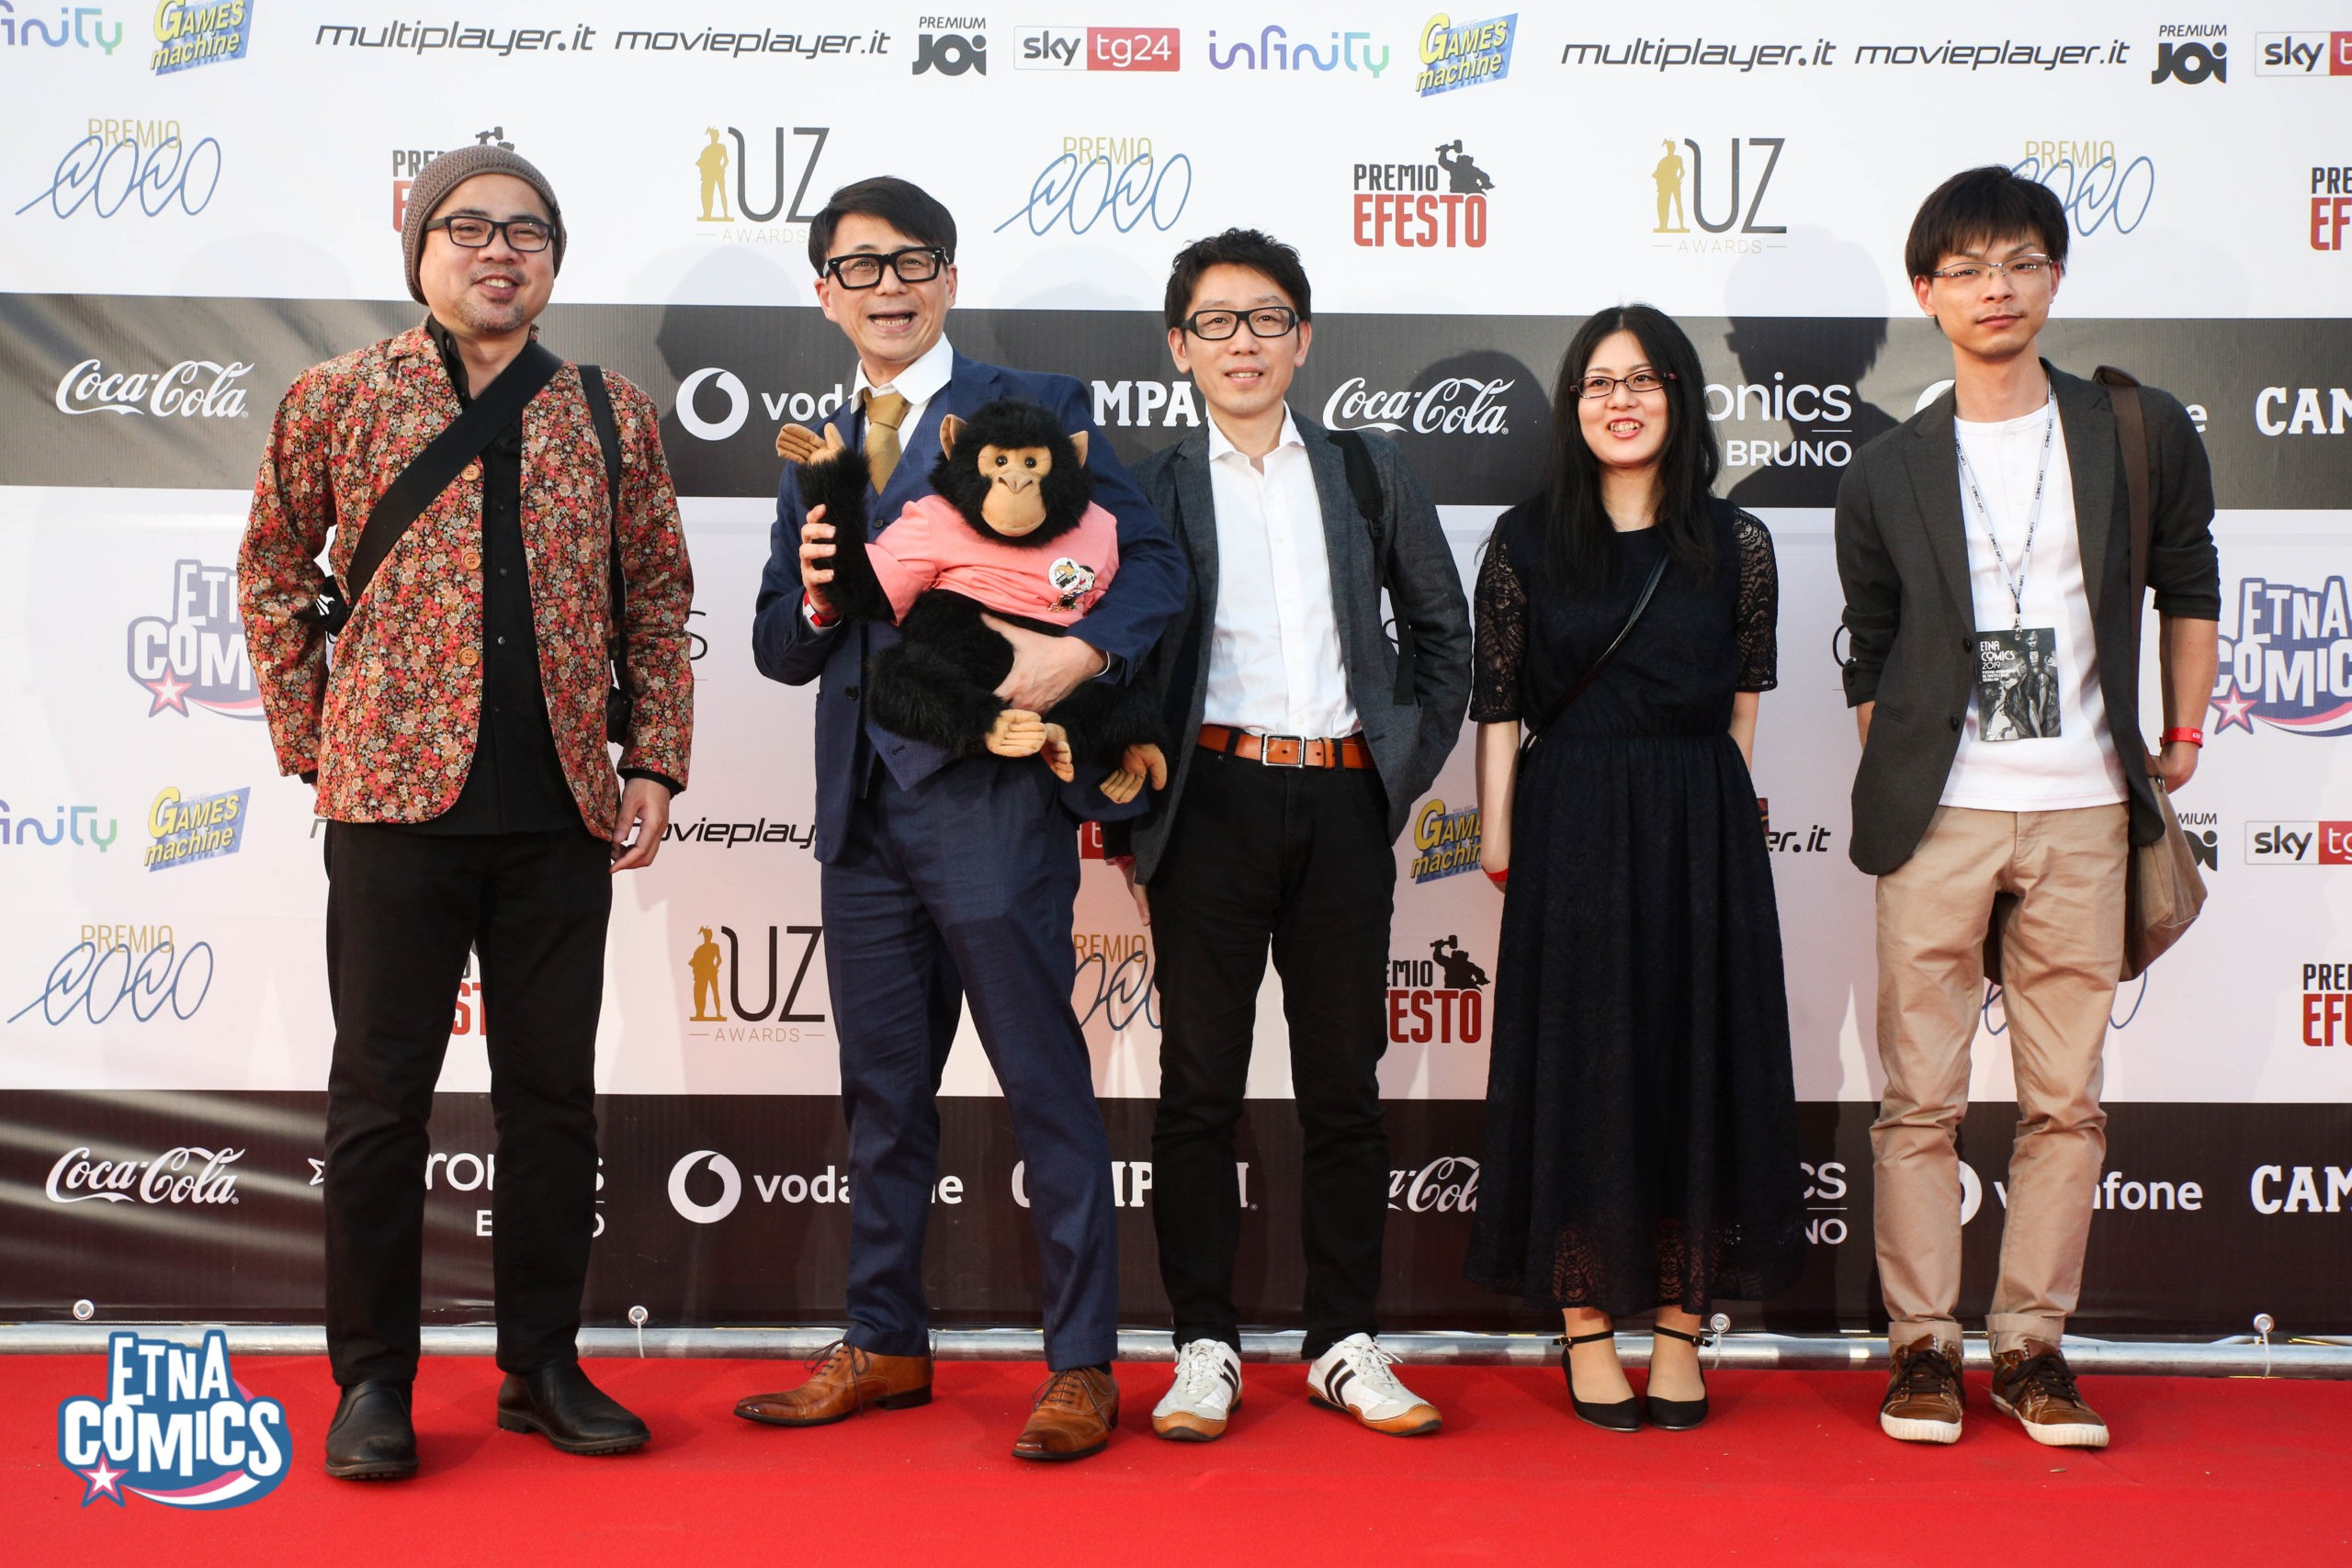 Red Carpet Etna Comics Awards 2019 Keo Marketing